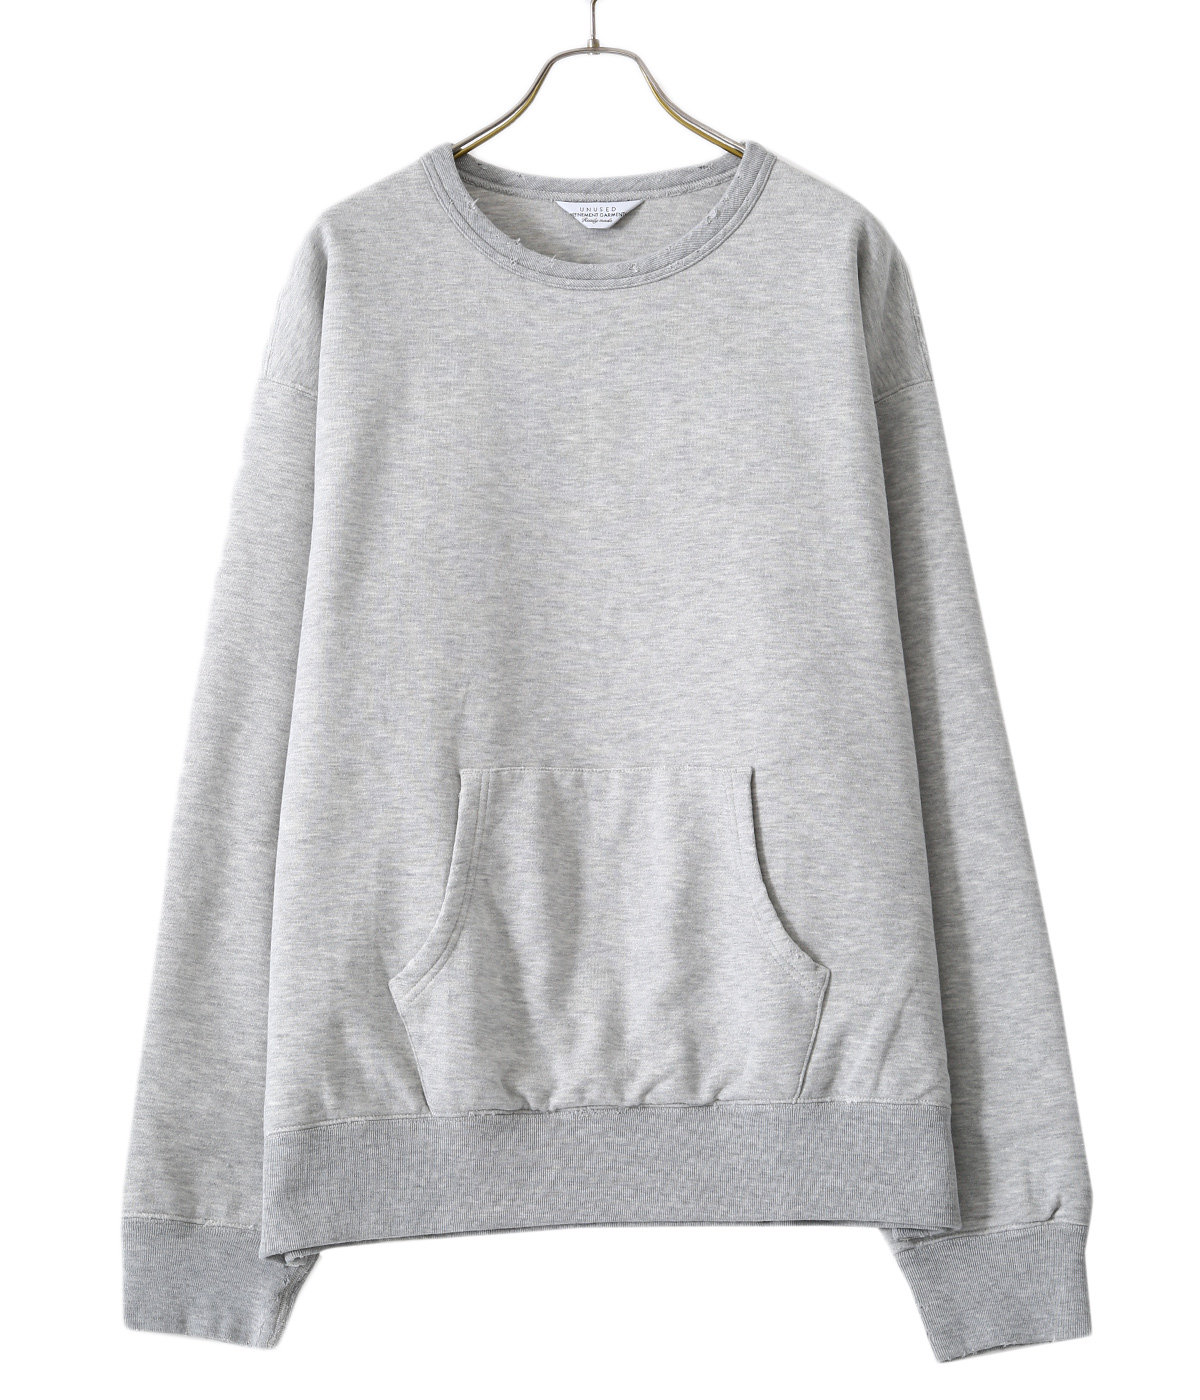 Crew neck sweat shirt